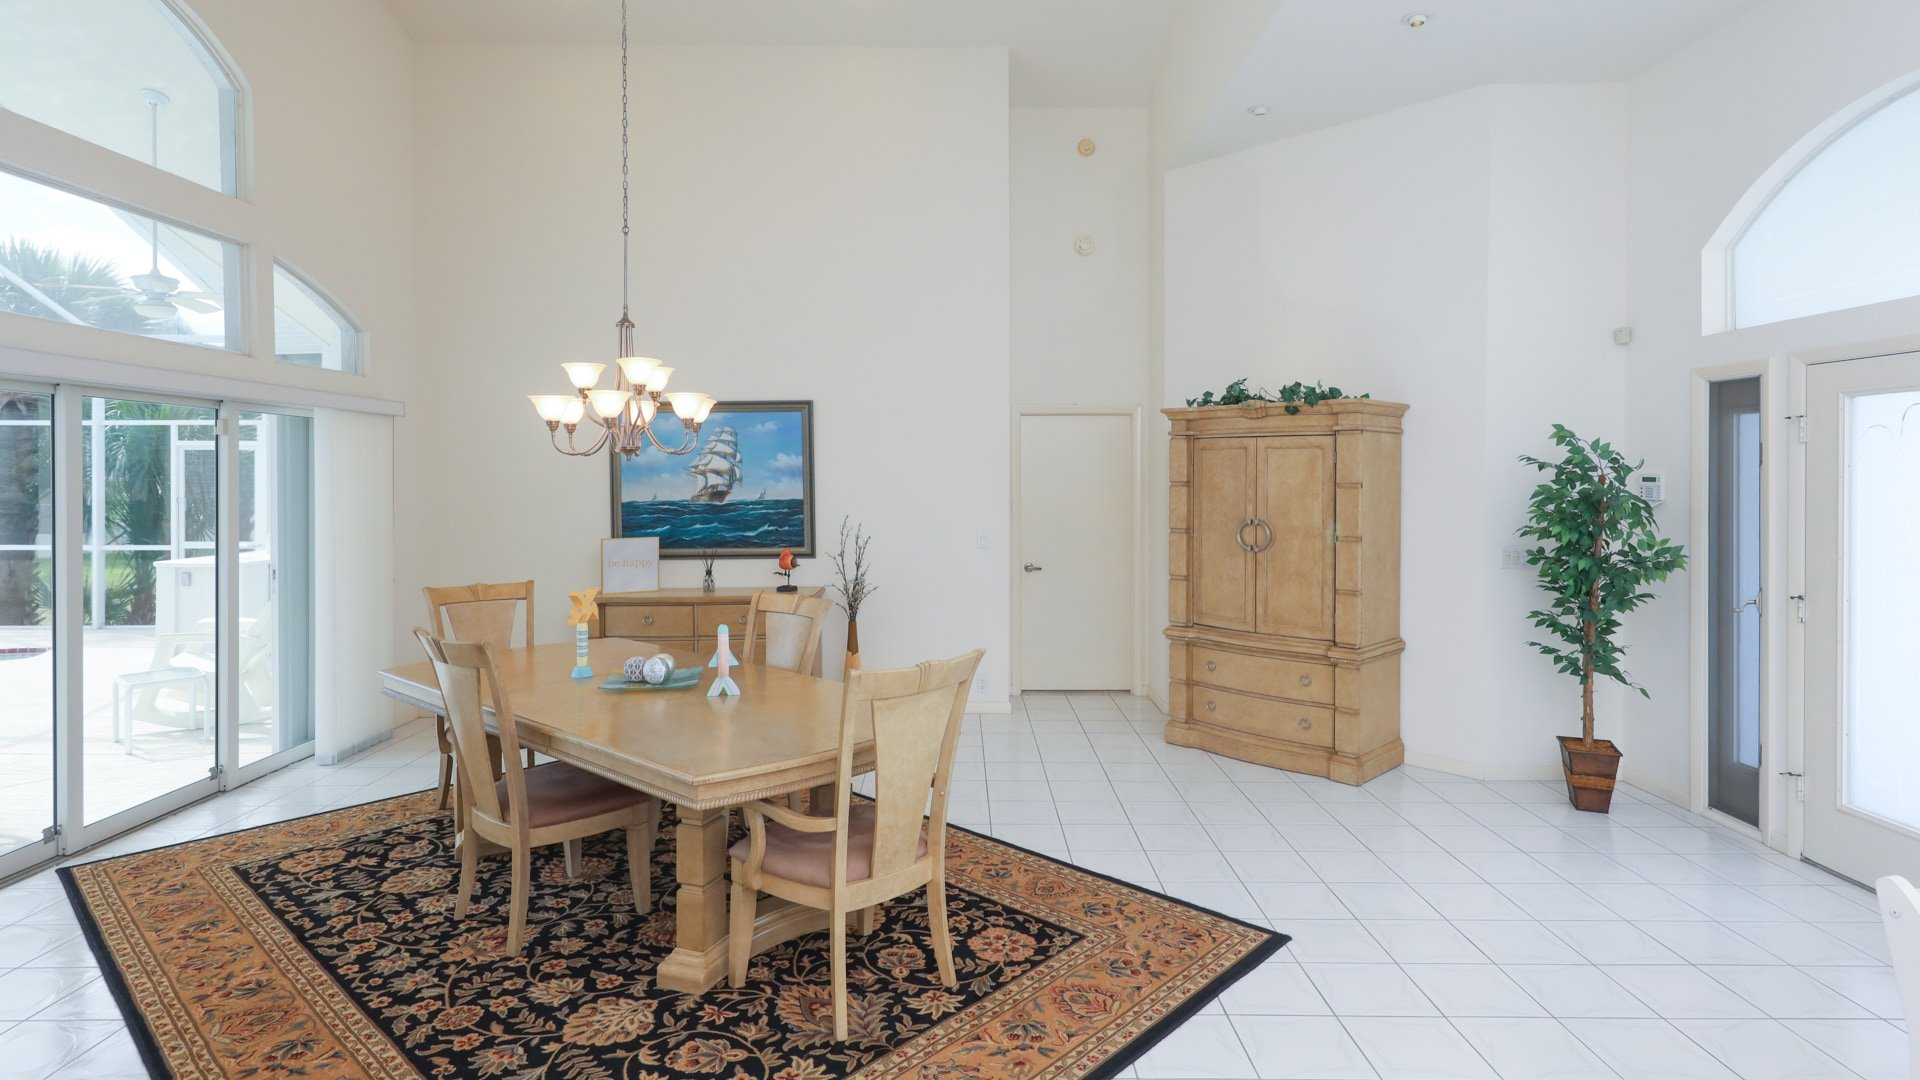 3836 Paola Dr-212771